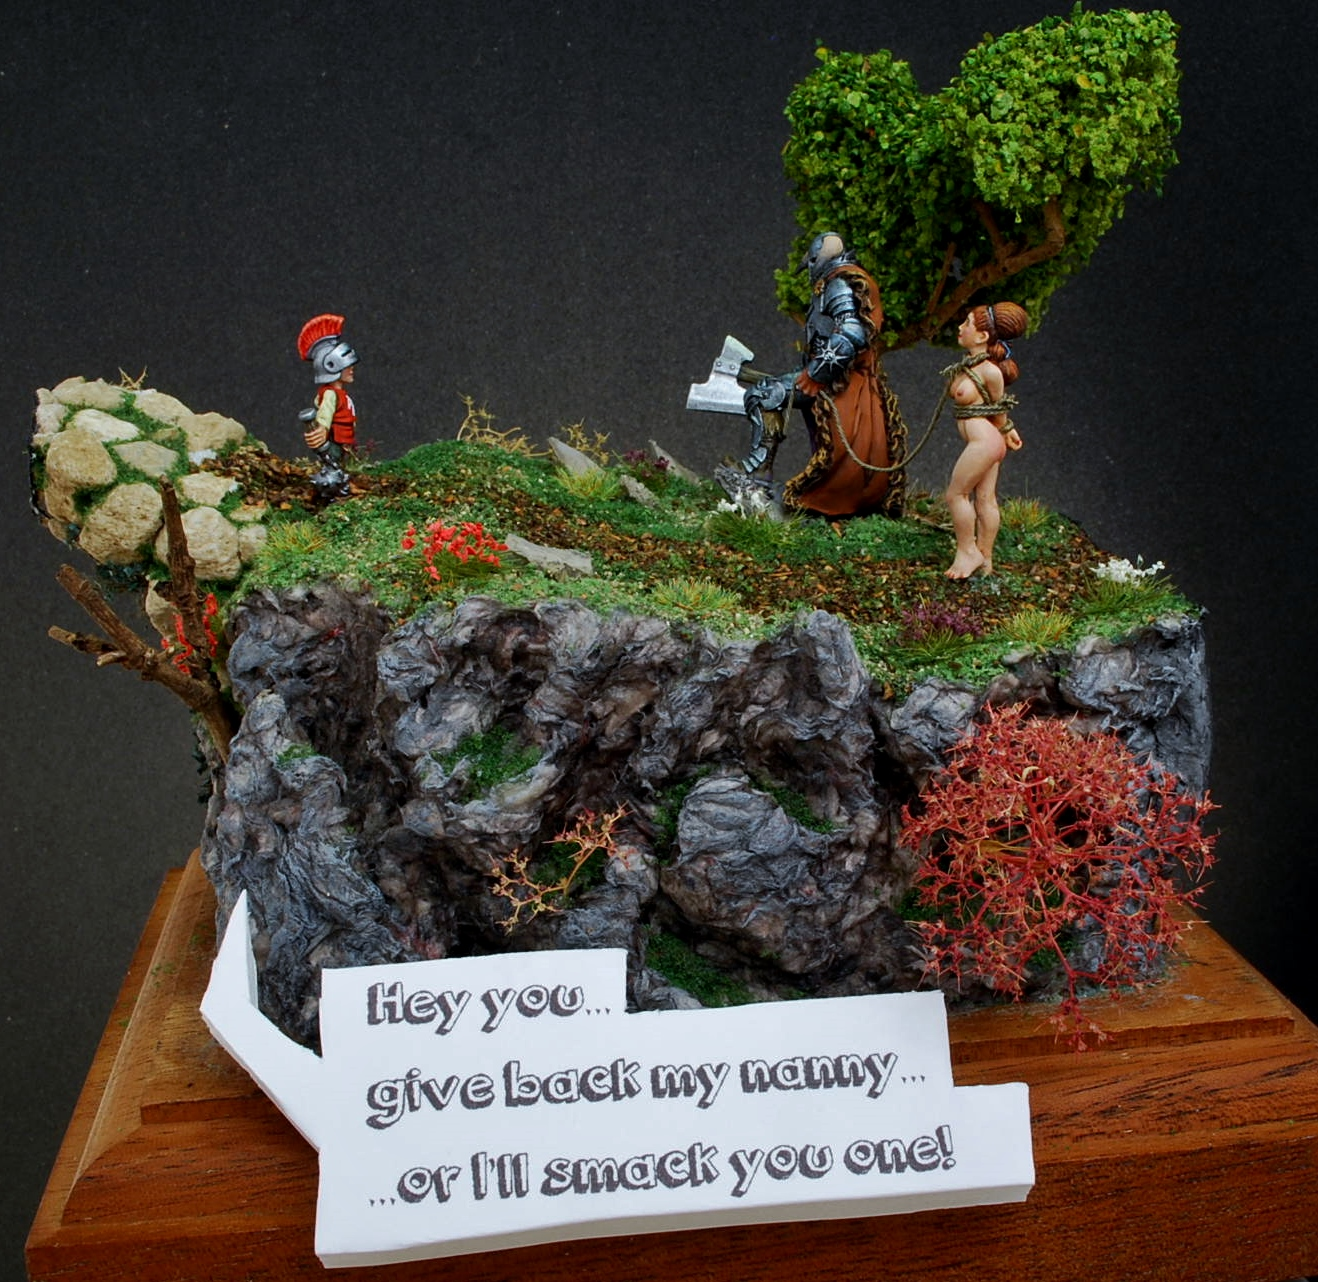 Give-back-my-nanny-Hasslefree-Miniatures-32mm-1